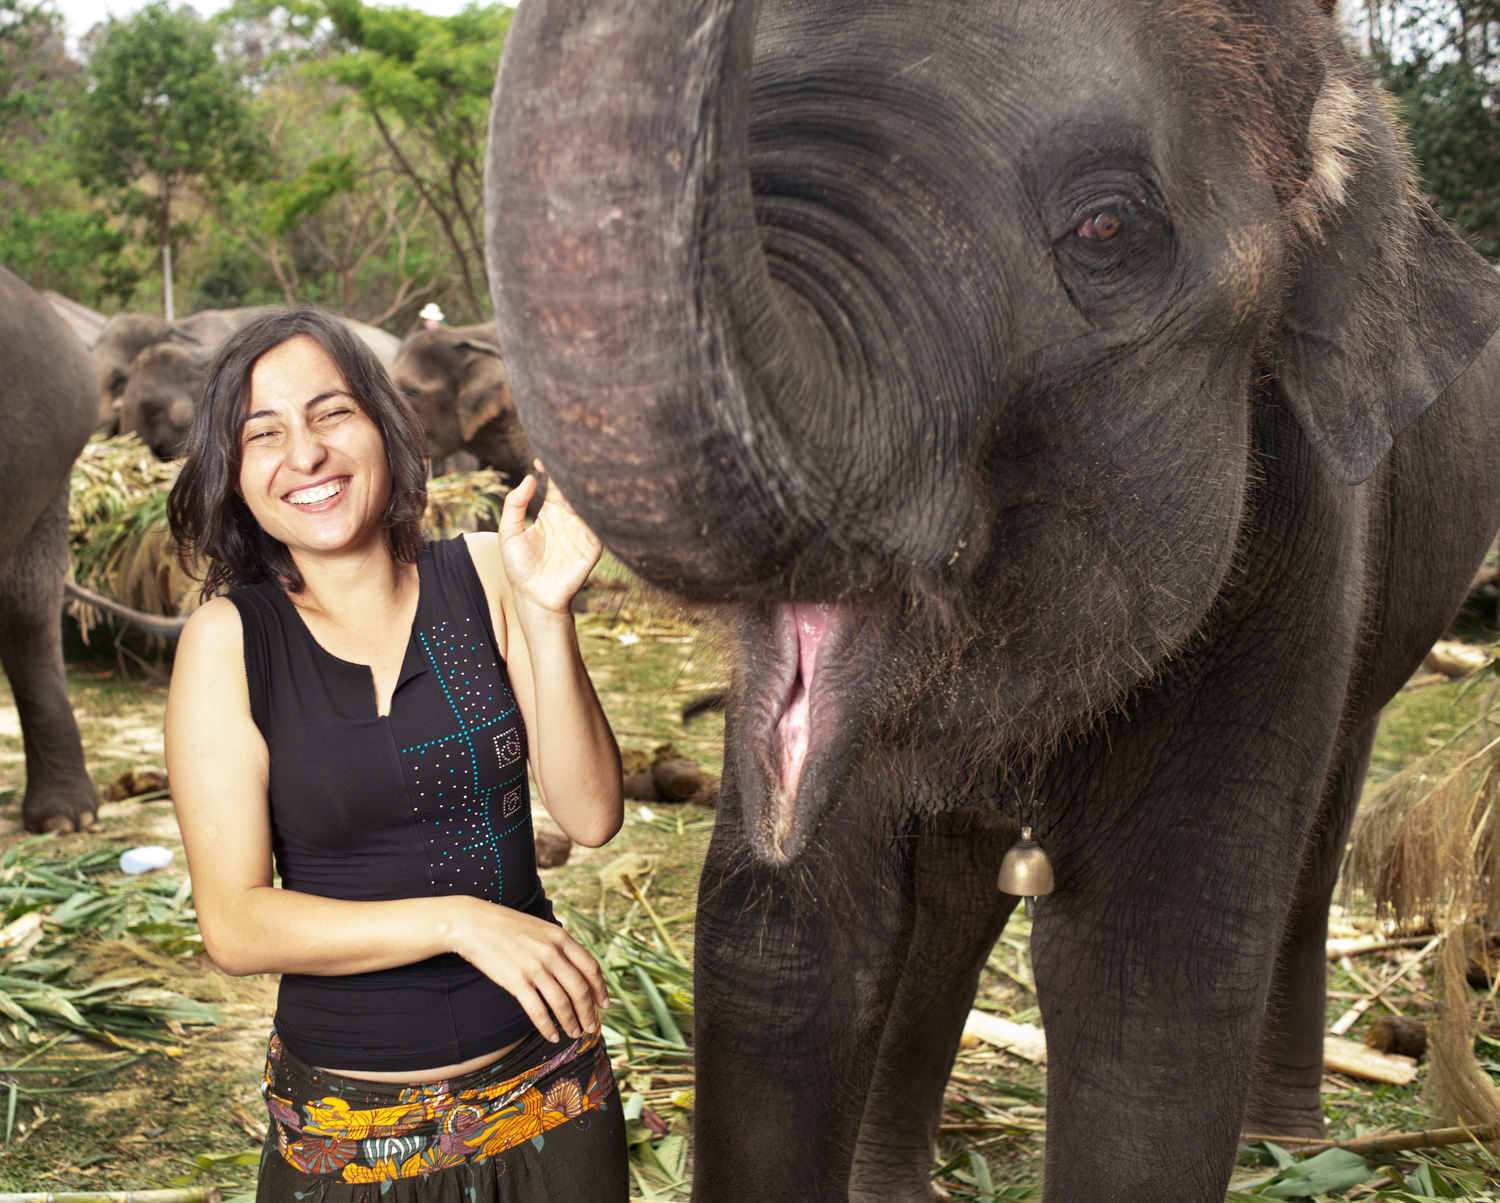 Woman and Elephants 7 Different Situations Where You Can Use Fill Flash Effectively